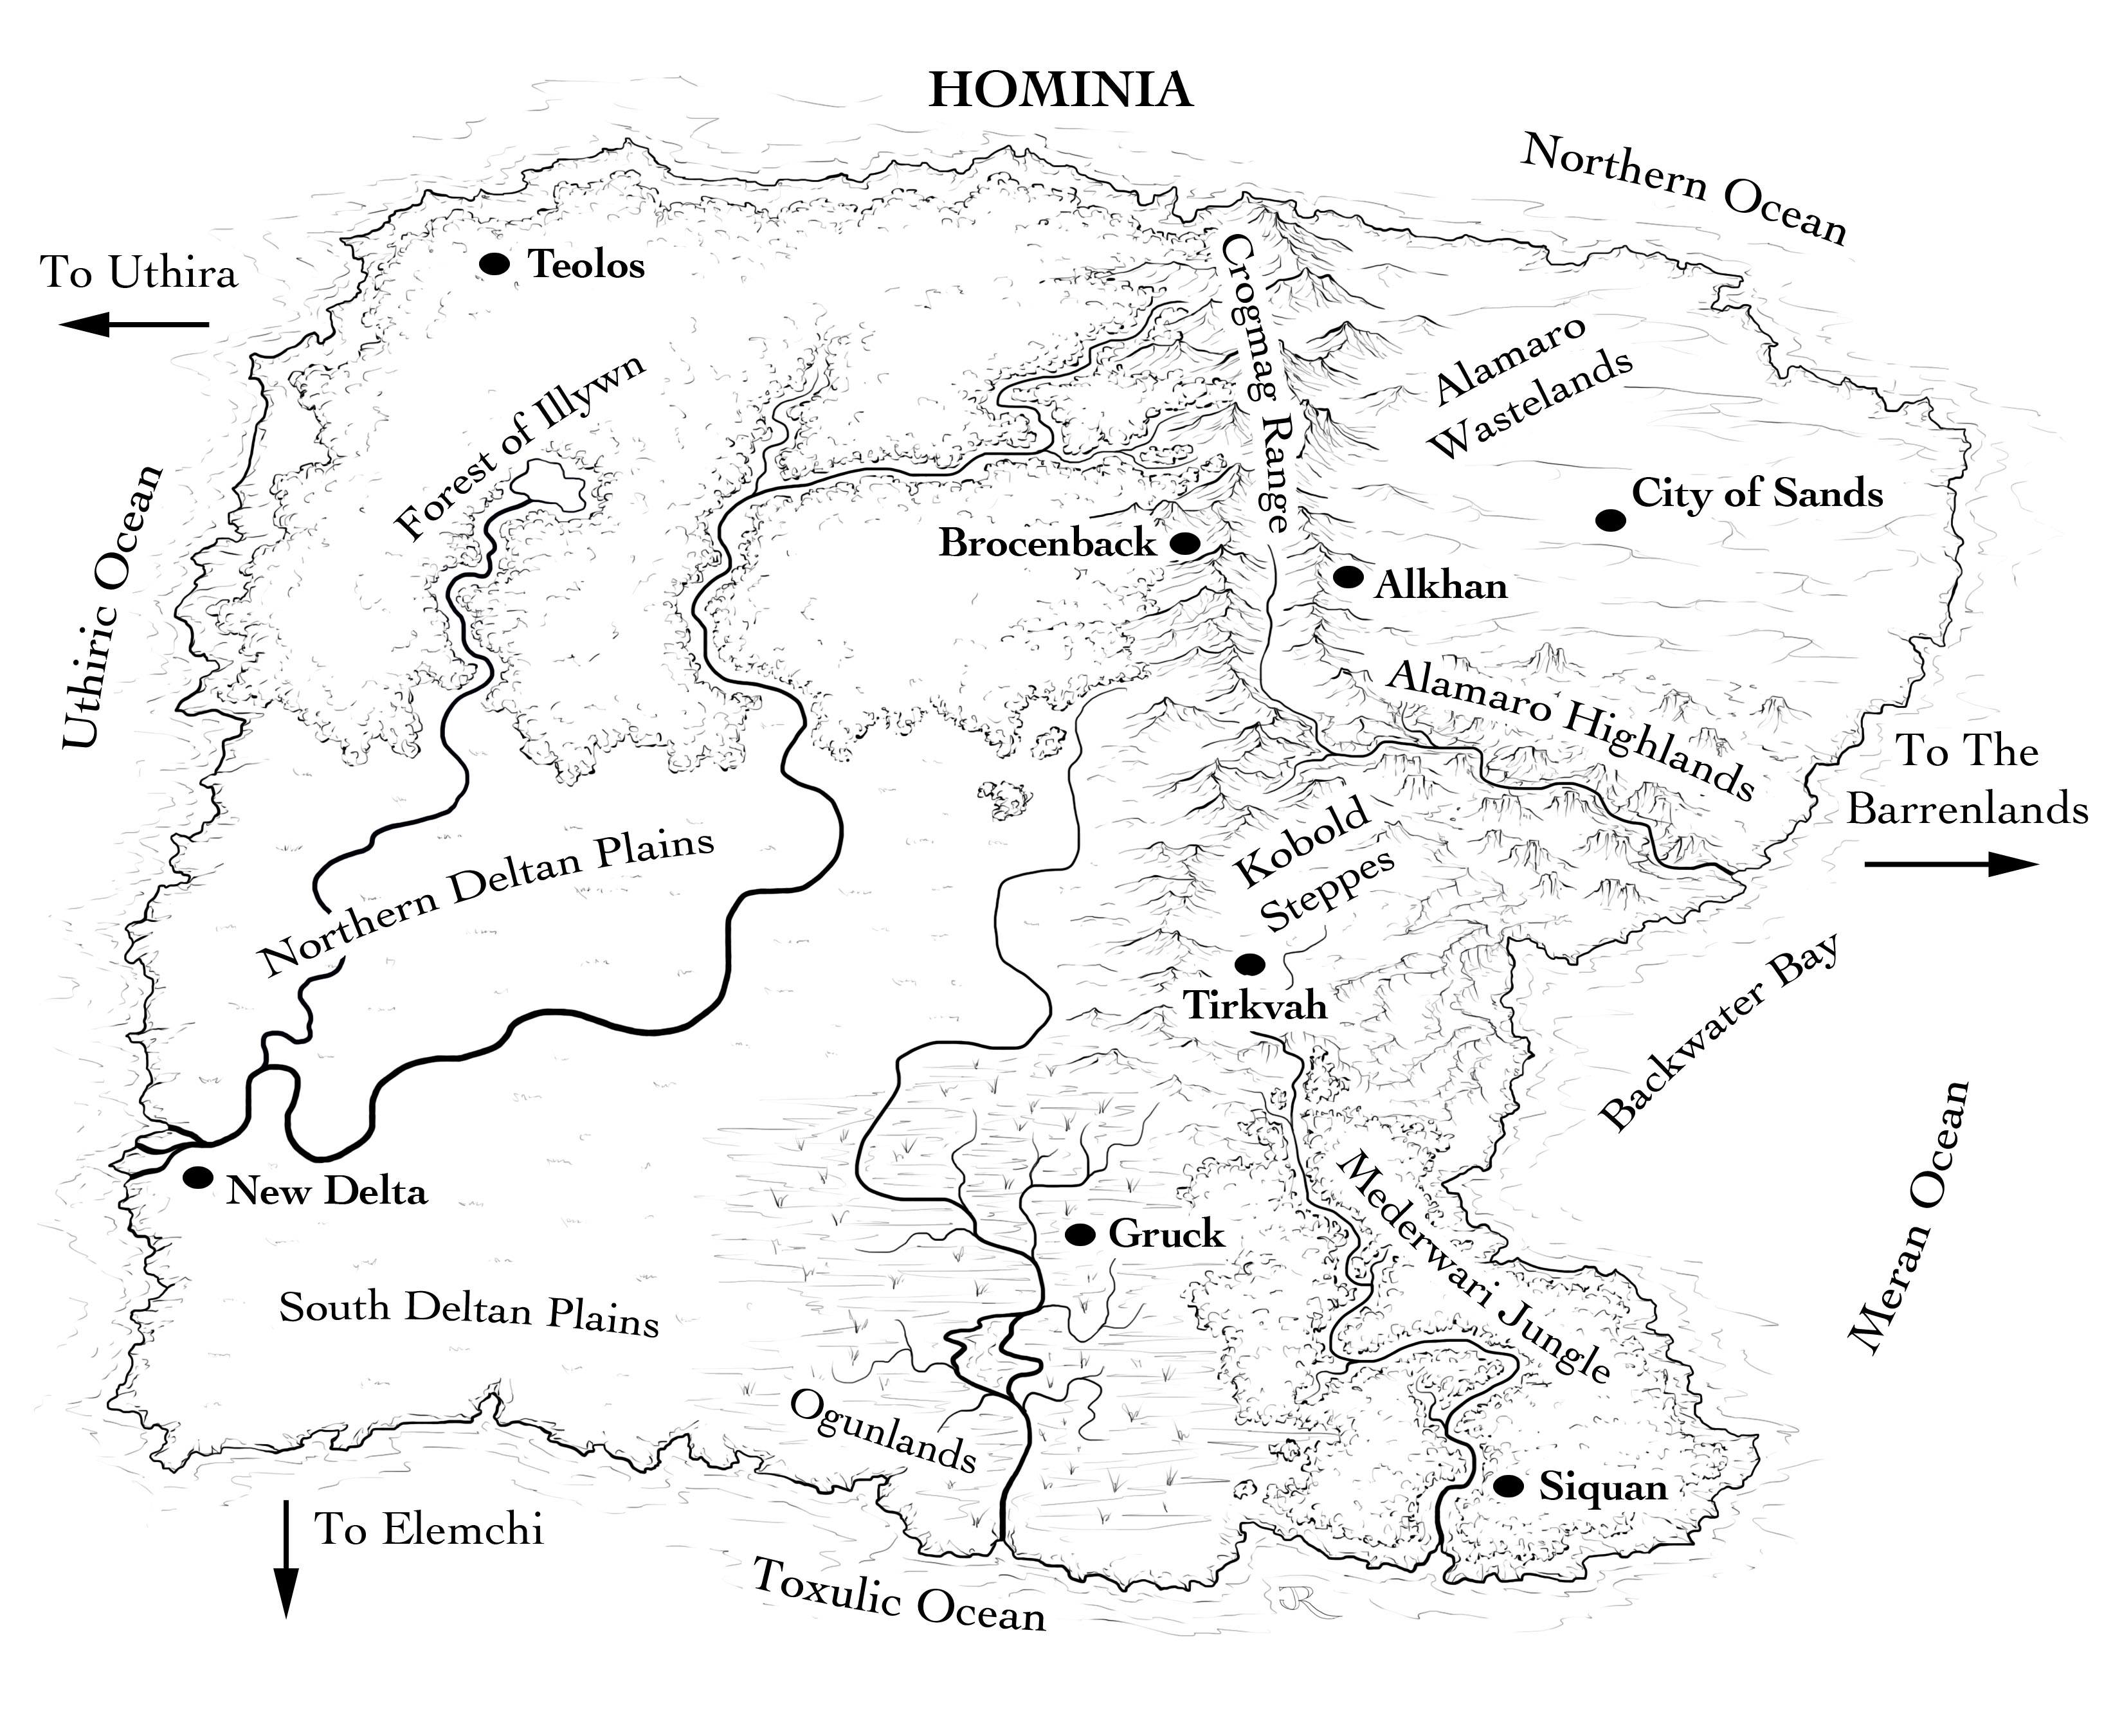 The world of Hominia for Noah Murphy